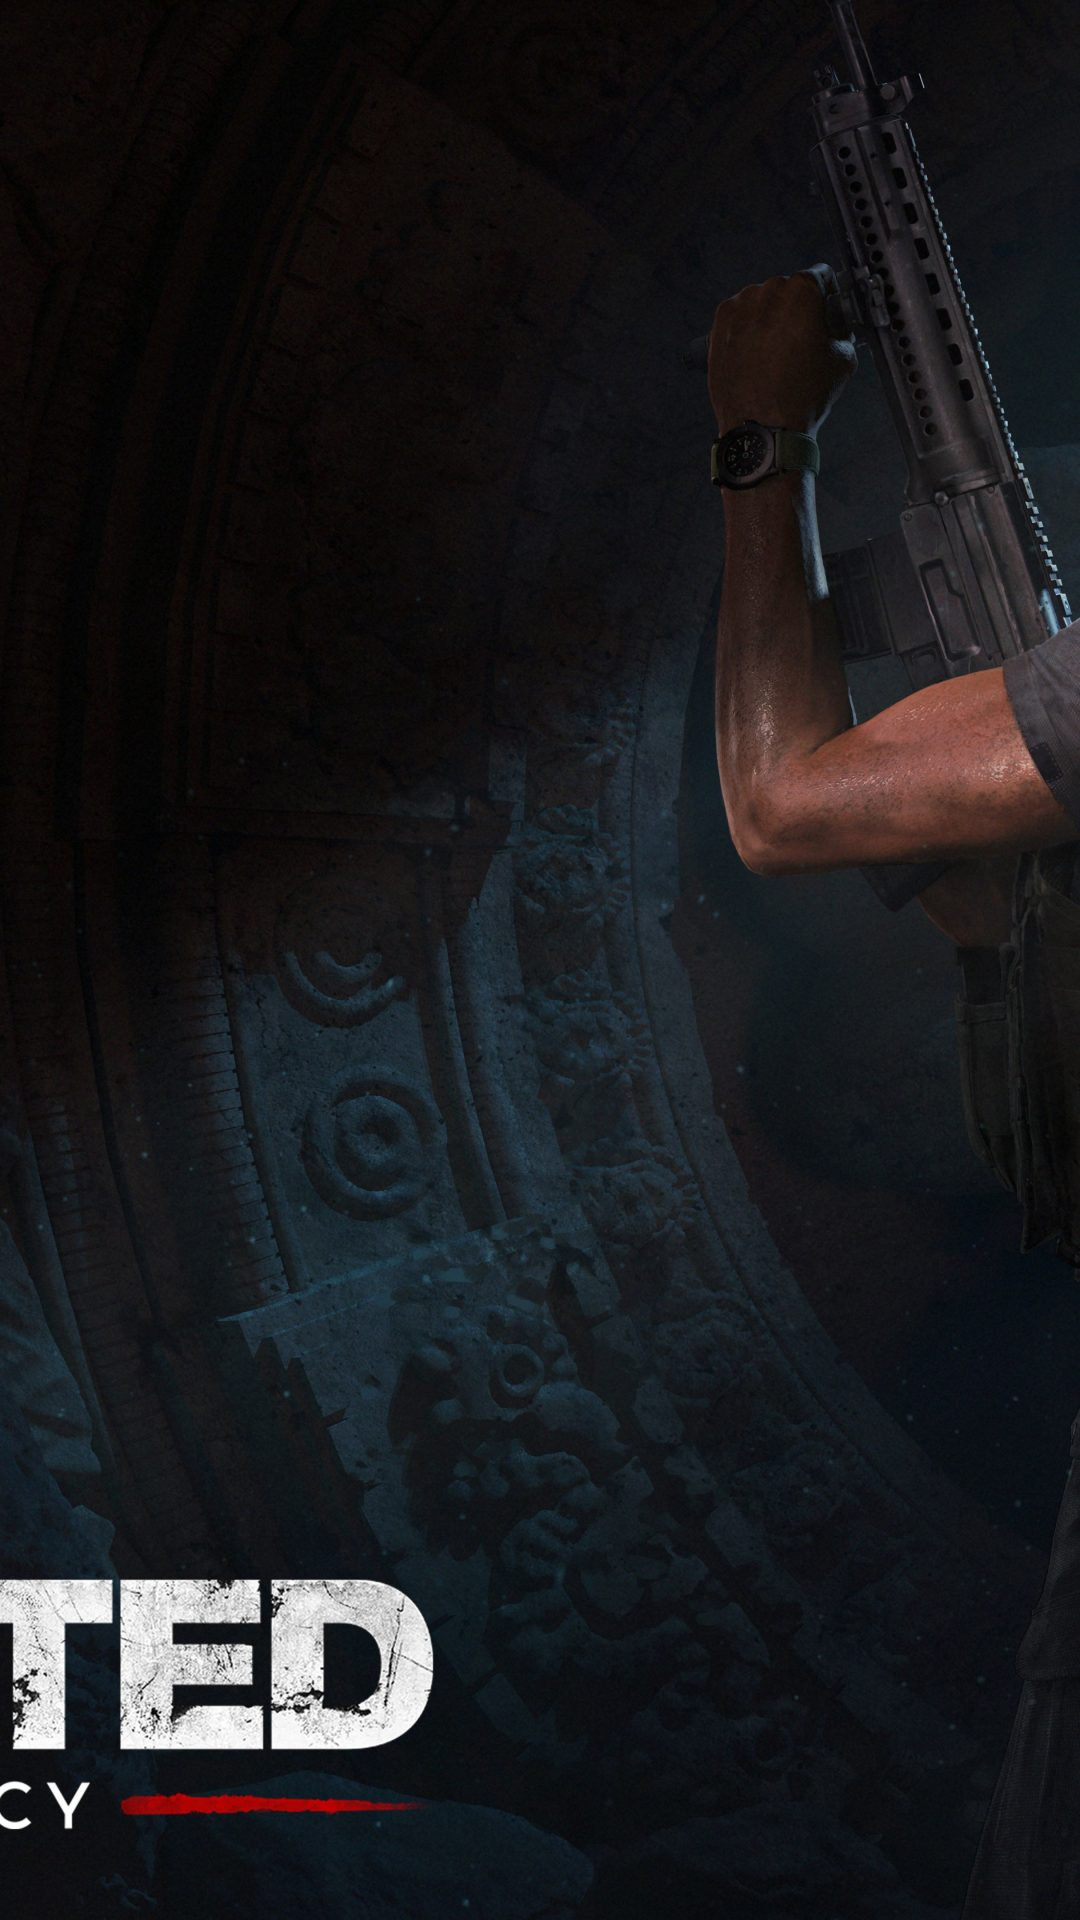 Hd Wallpapers Assassins Creed Uncharted The Lost Legacy Wallpaper 4k 8k Hd Wallpaper